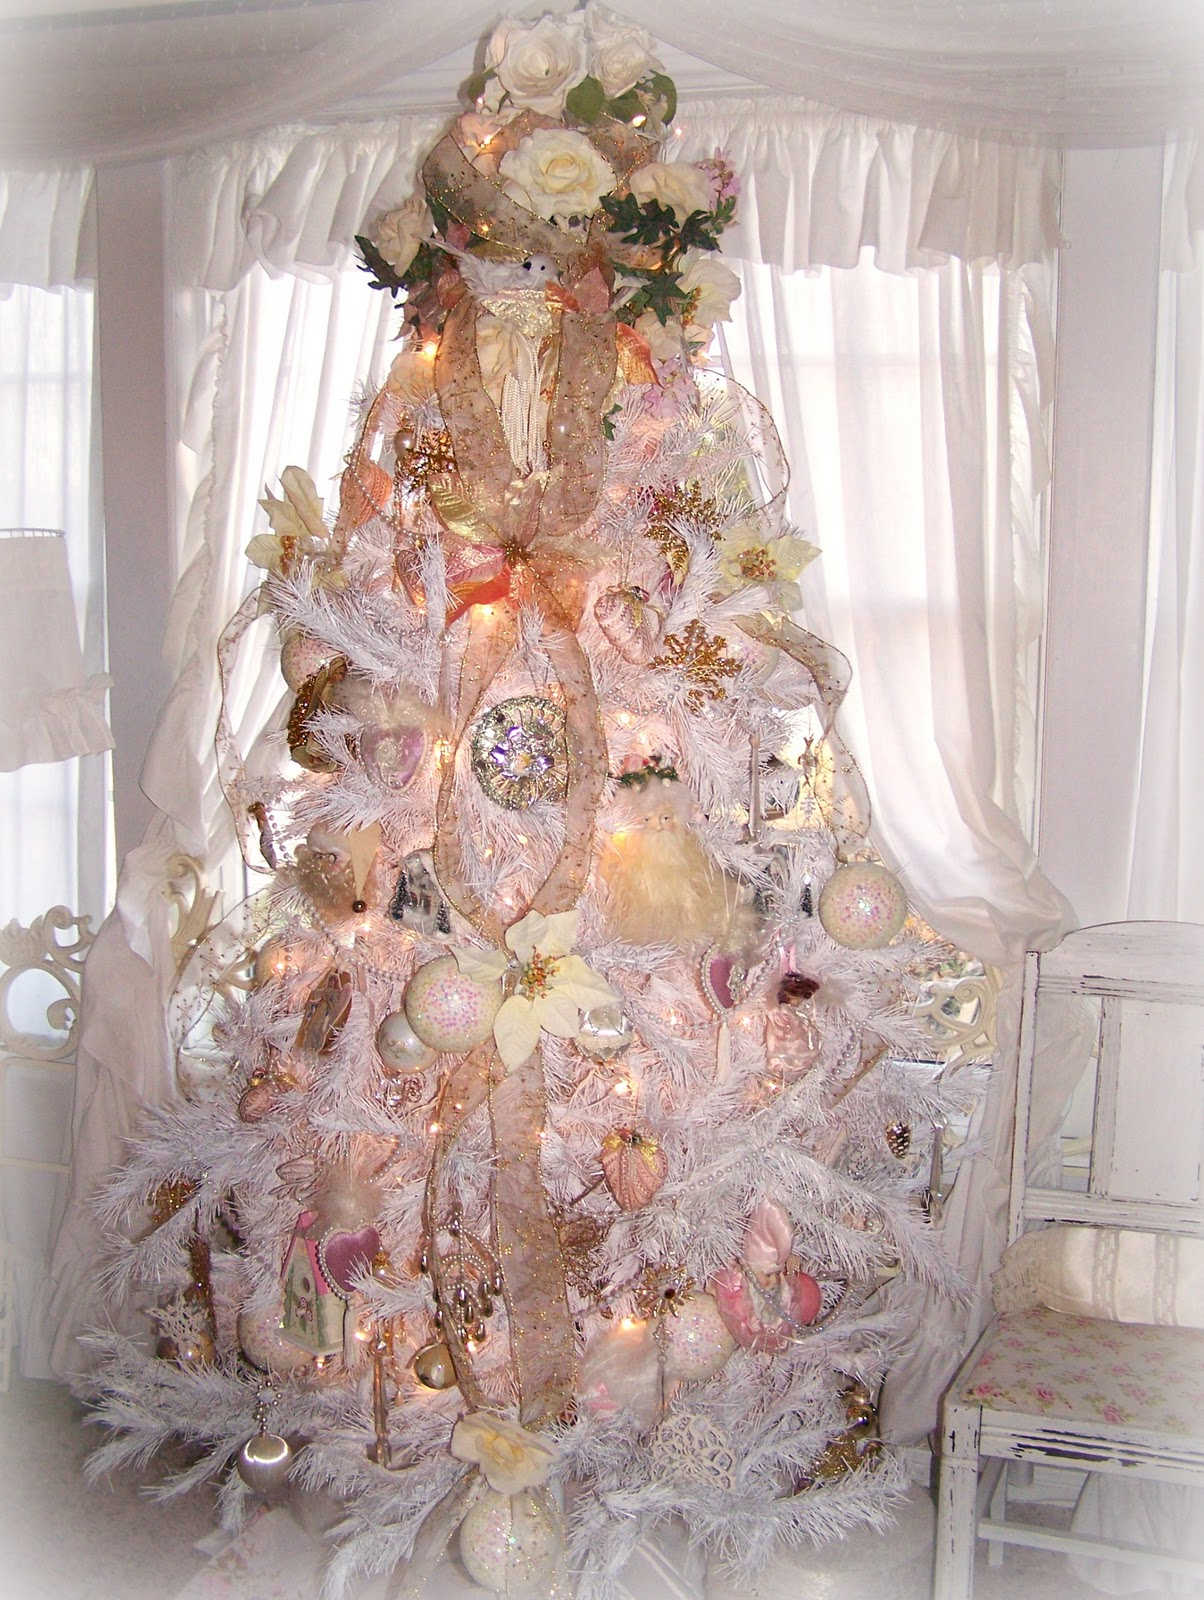 Olivia's Romantic Home: Shabby Chic White Christmas Tree